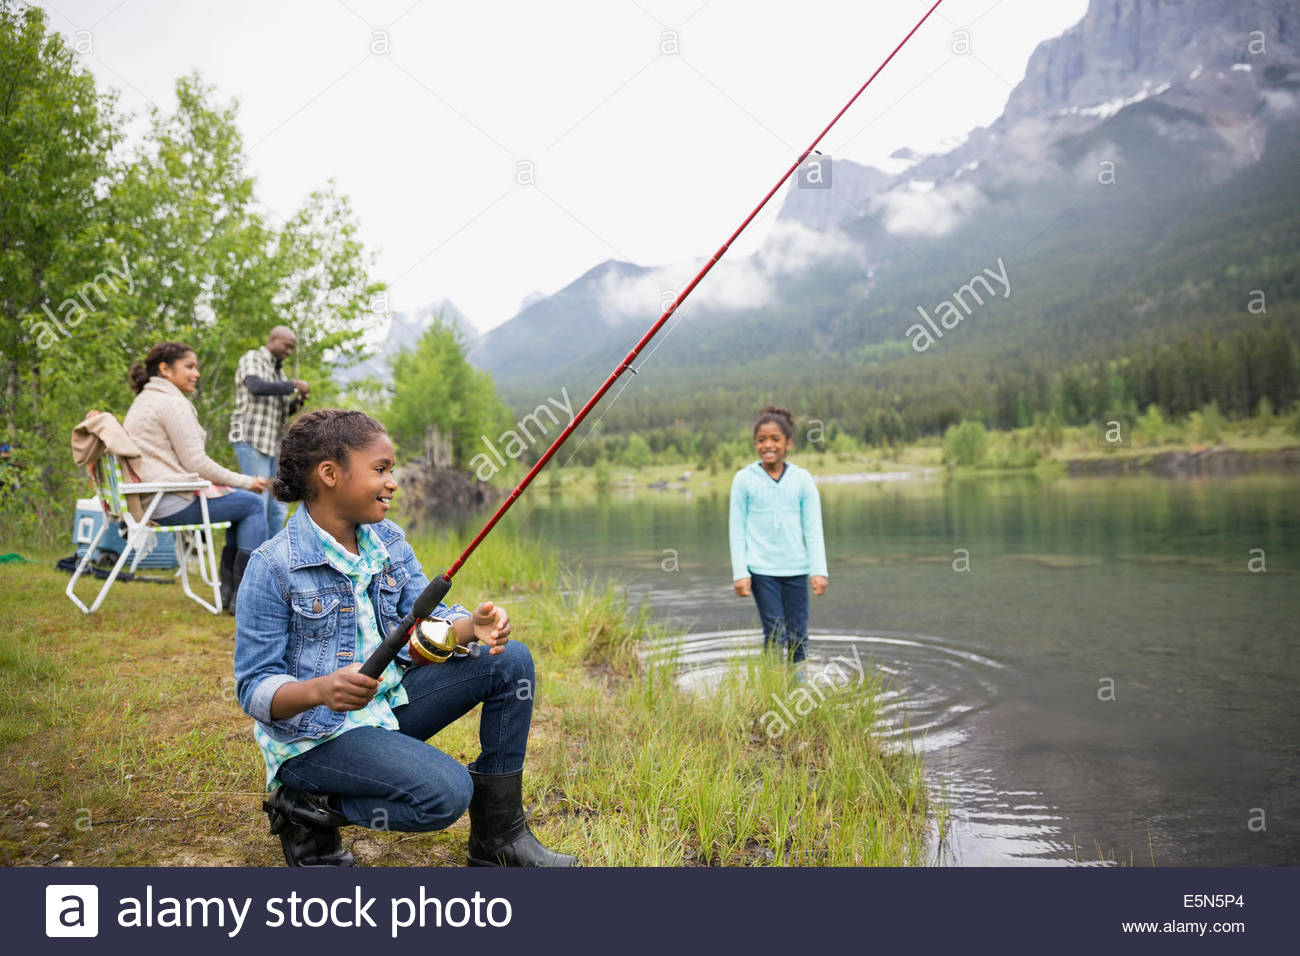 green fishing chair your zone flip available in multiple colors stock photos images alamy family at lakeside below mountains image